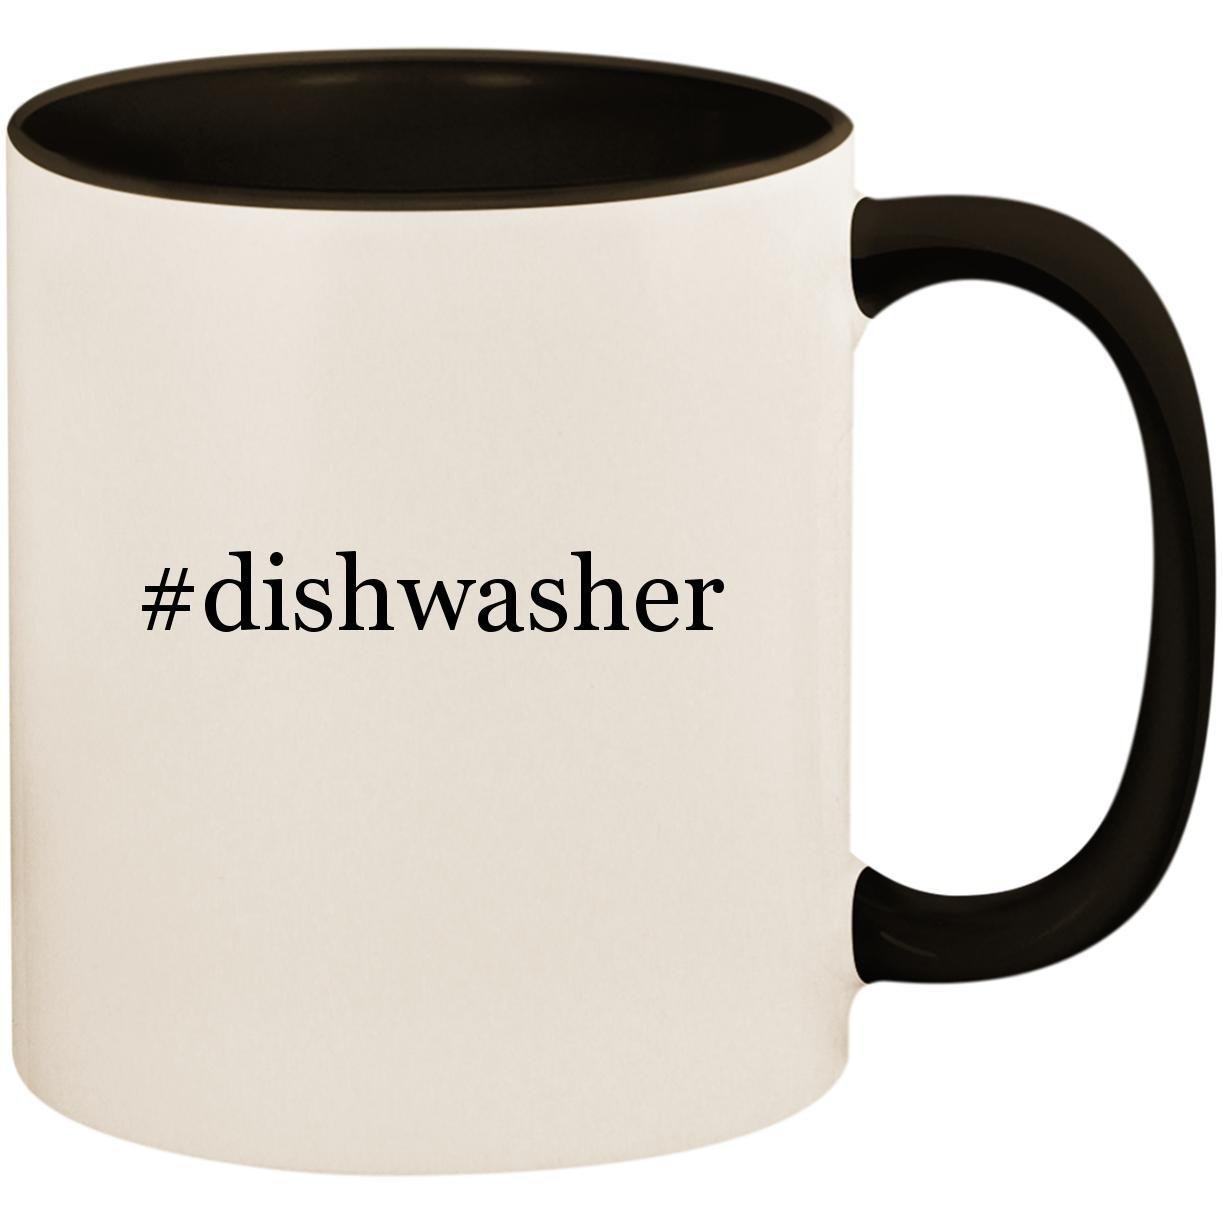 #dishwasher - 11oz Ceramic Colored Inside and Handle Coffee Mug Cup, Black